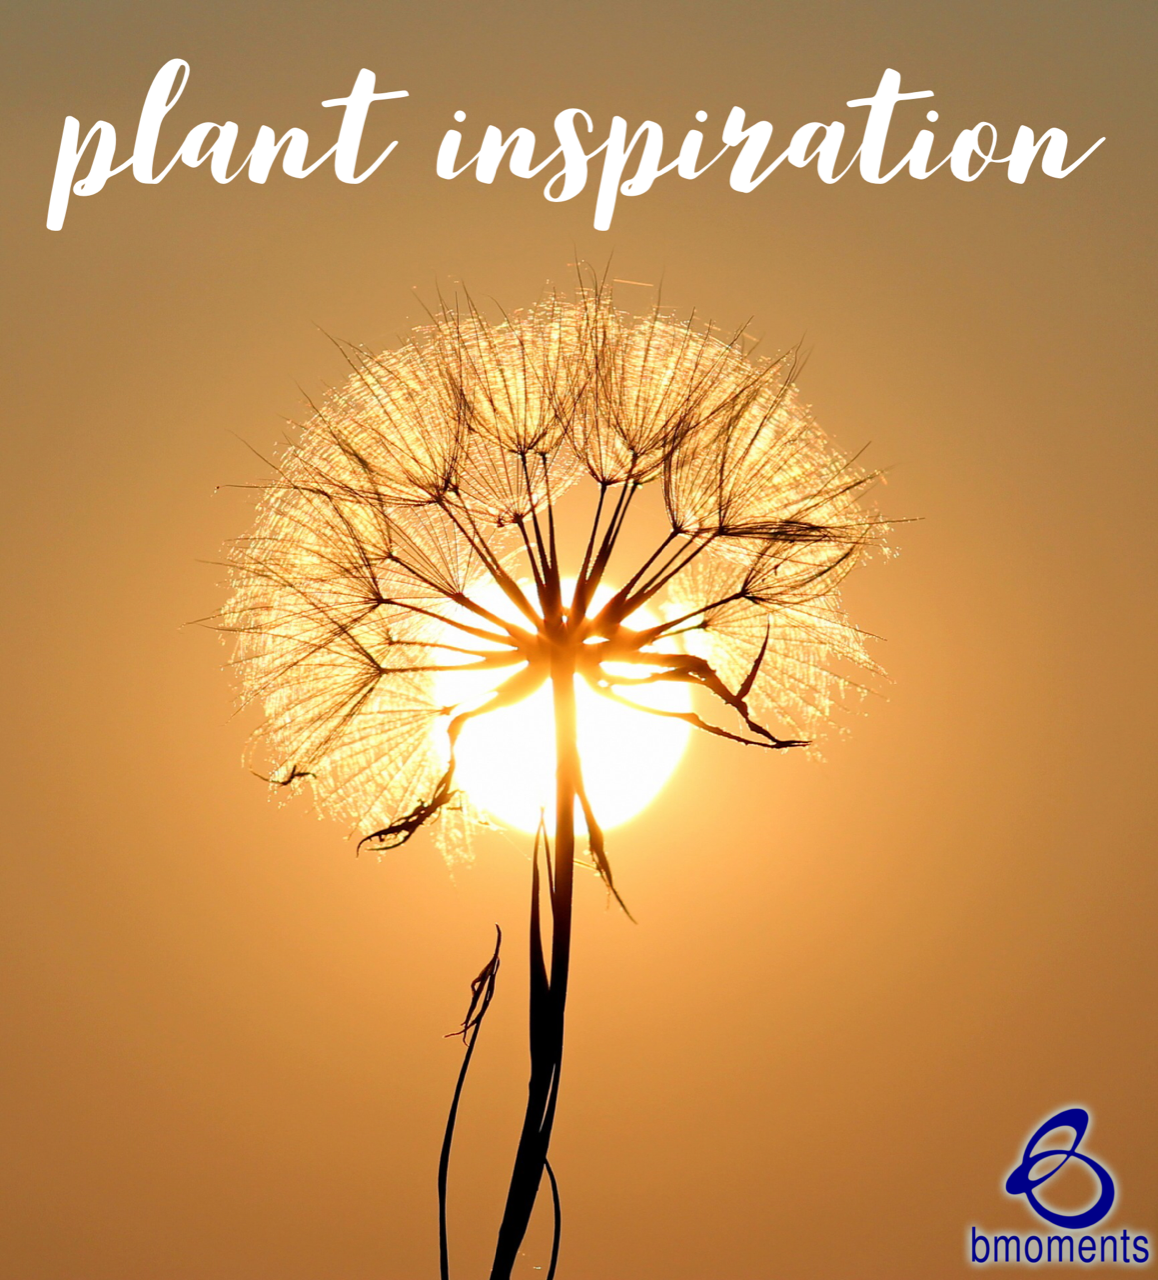 Speak into Their Destiny: Plants Seeds of Inspiration